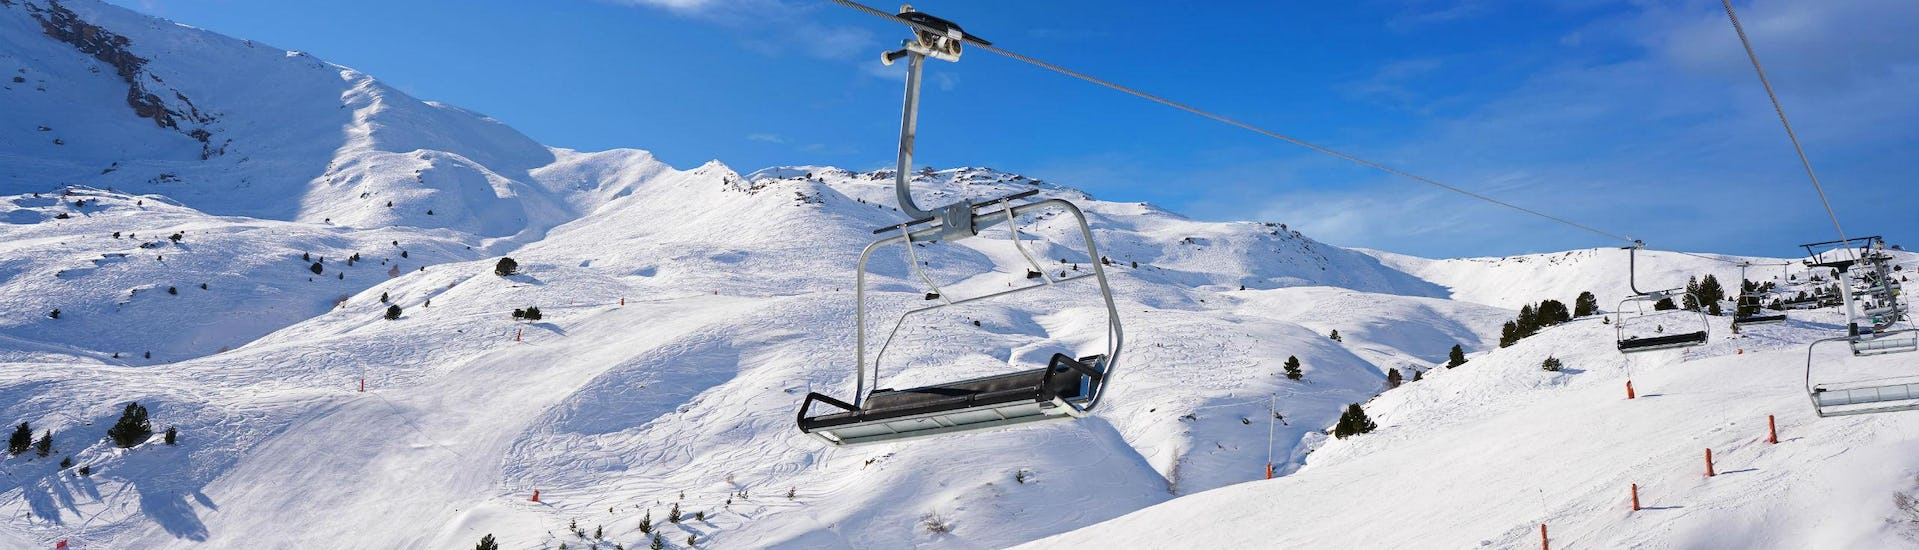 An image of a chair lift in the ski resort of Cerler, where local ski schools offer a selection of ski lessons for those who want to learn to ski.